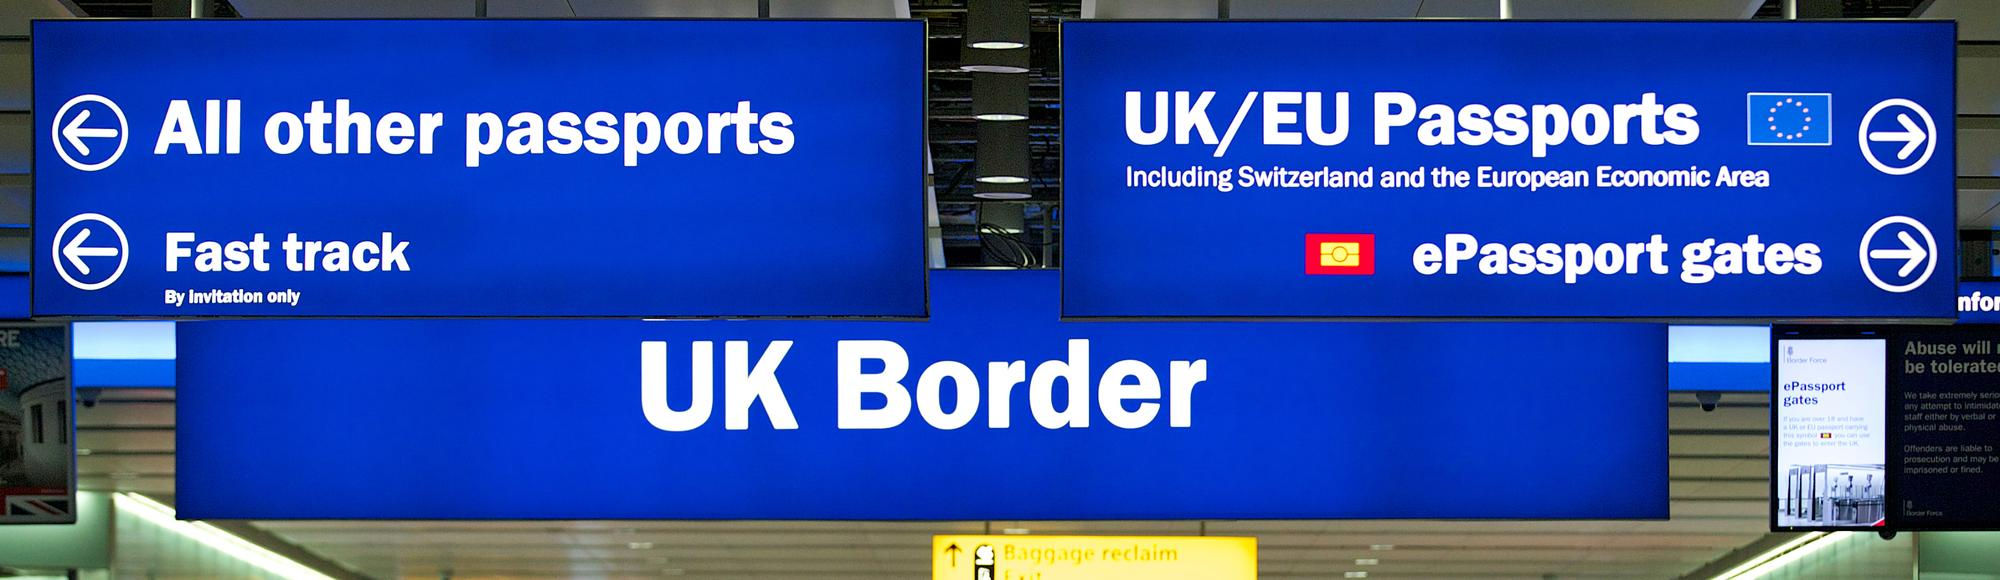 What It's Like to Be Violently Deported from the UK